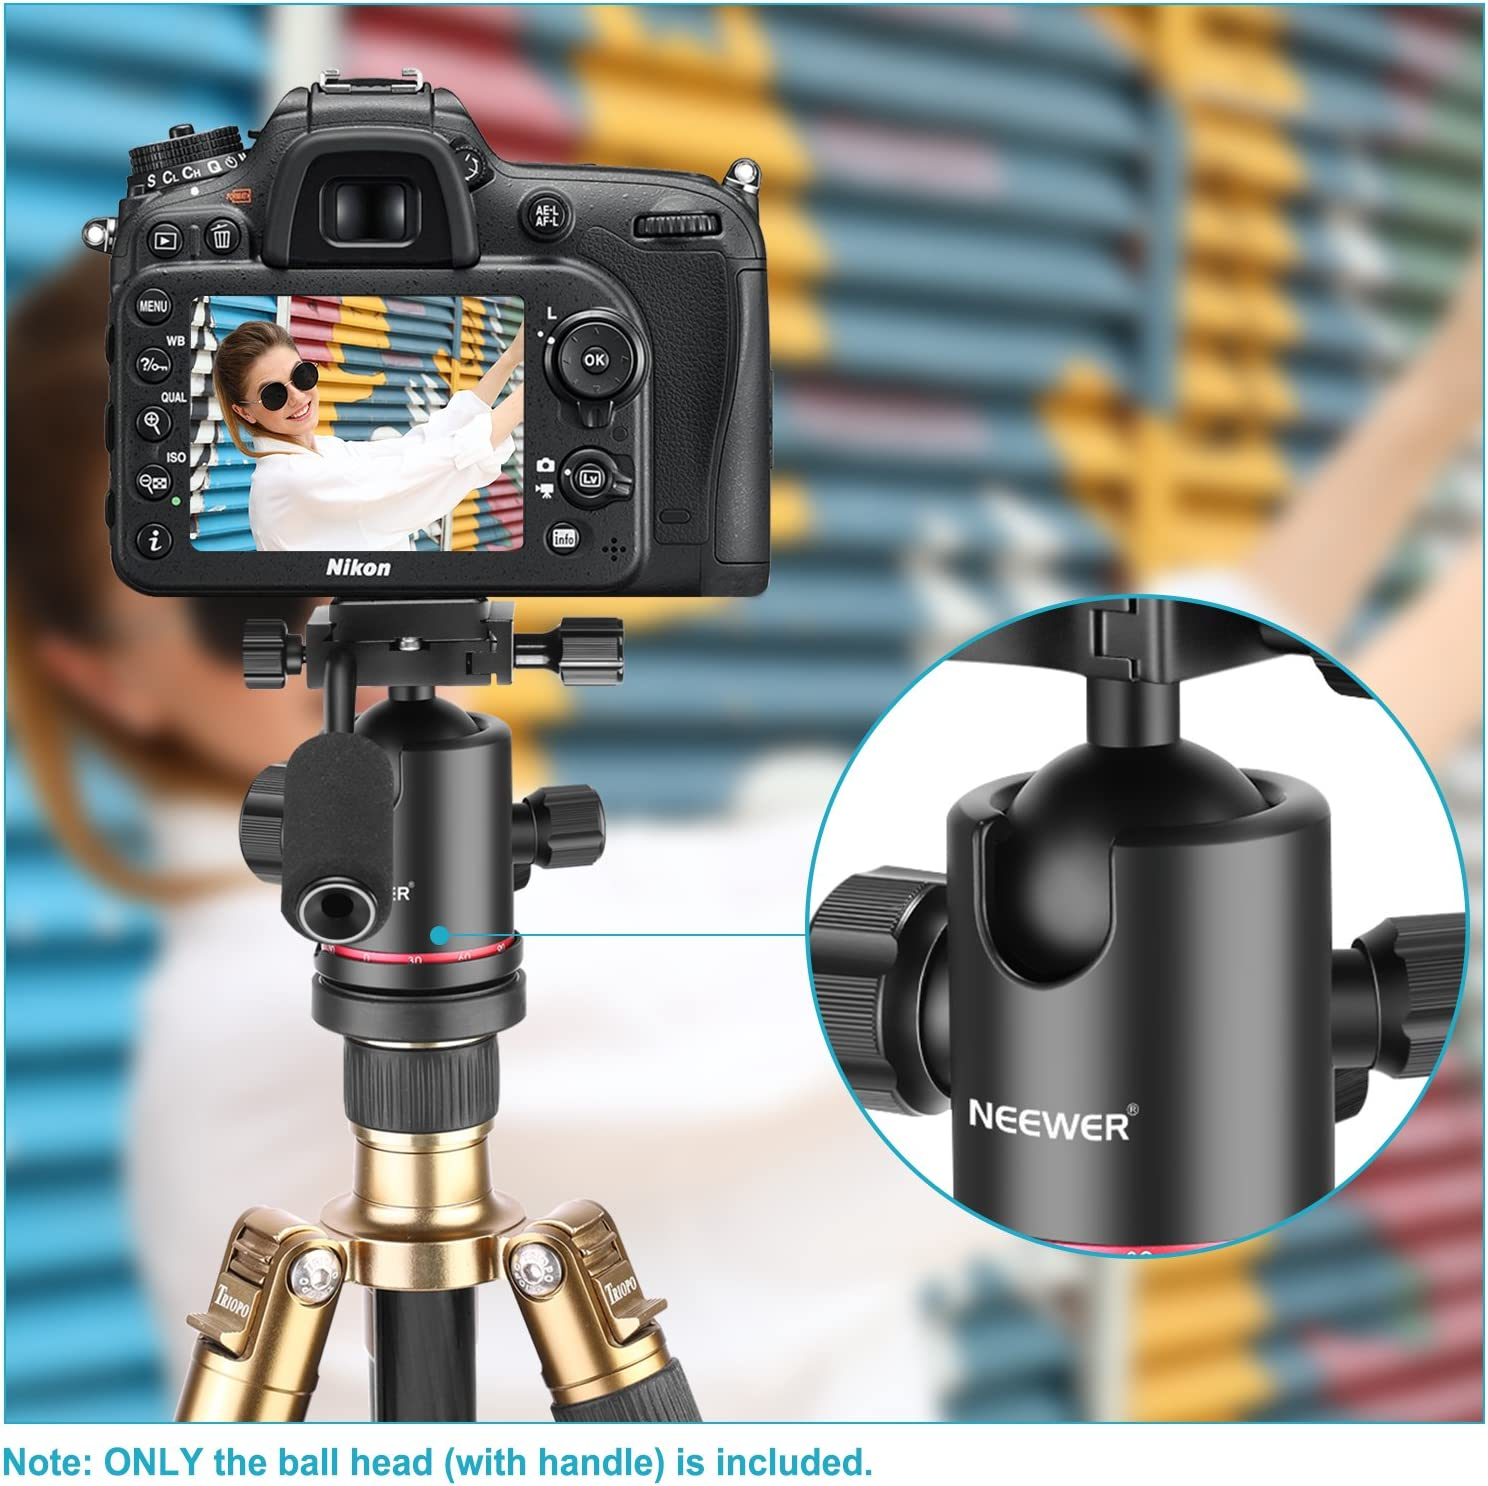 Camcorder 360 Degree Panoramic Head for Tripod Load up to 17.6 pounds//8 kilograms Slider Neewer Heavy Duty Camera Tripod Ball Head with Handle and 1//4 inch Quick Shoe Plate DSLR Camera Monopod